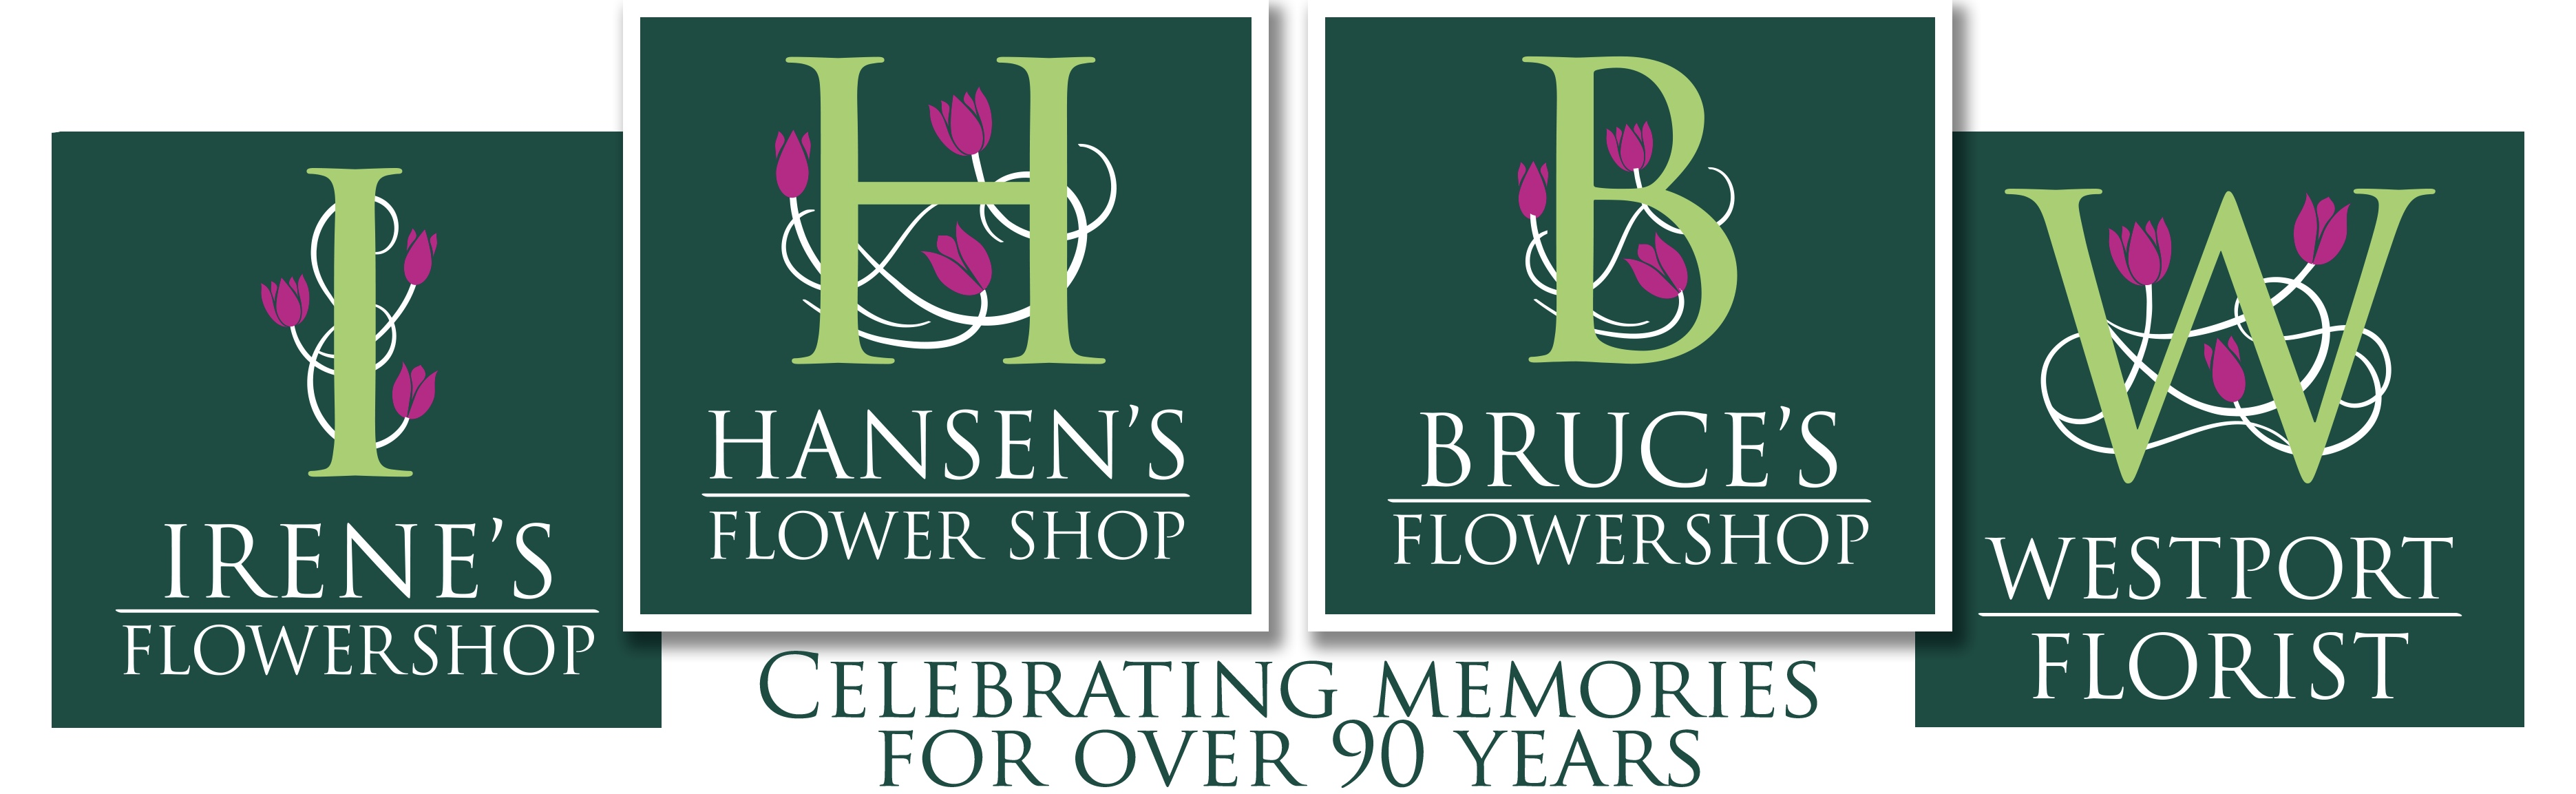 Hansen's Flower Shop